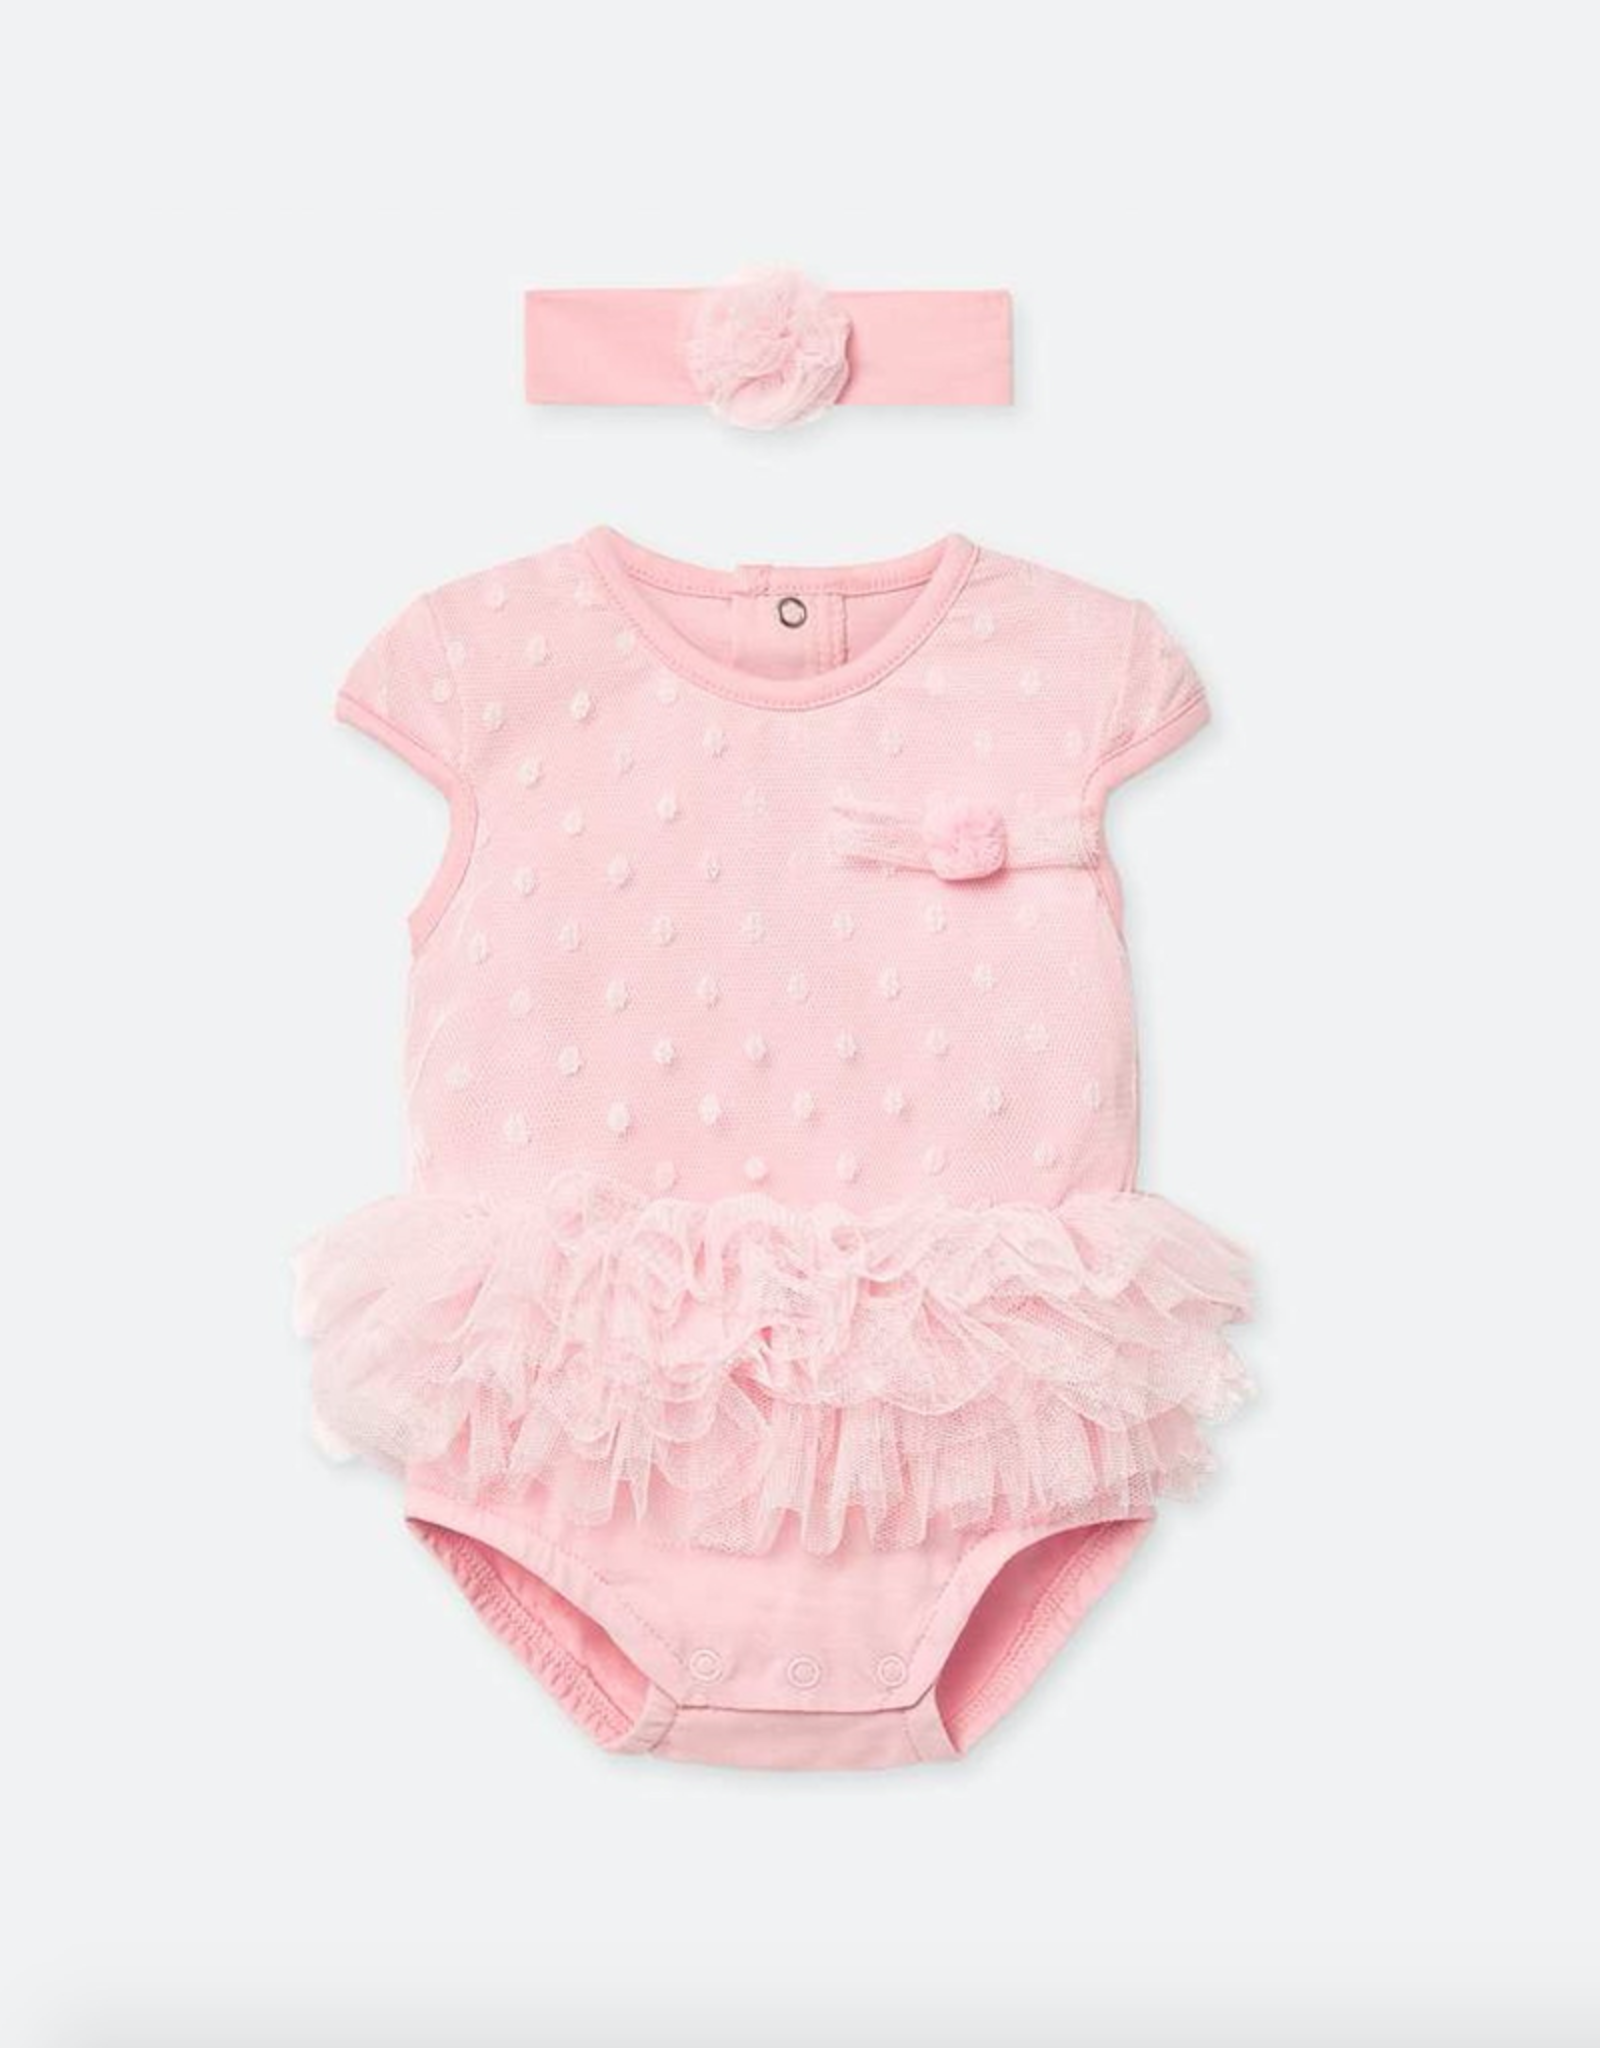 Mayoral Ruffled Bodysuit & Headband for Baby Girl